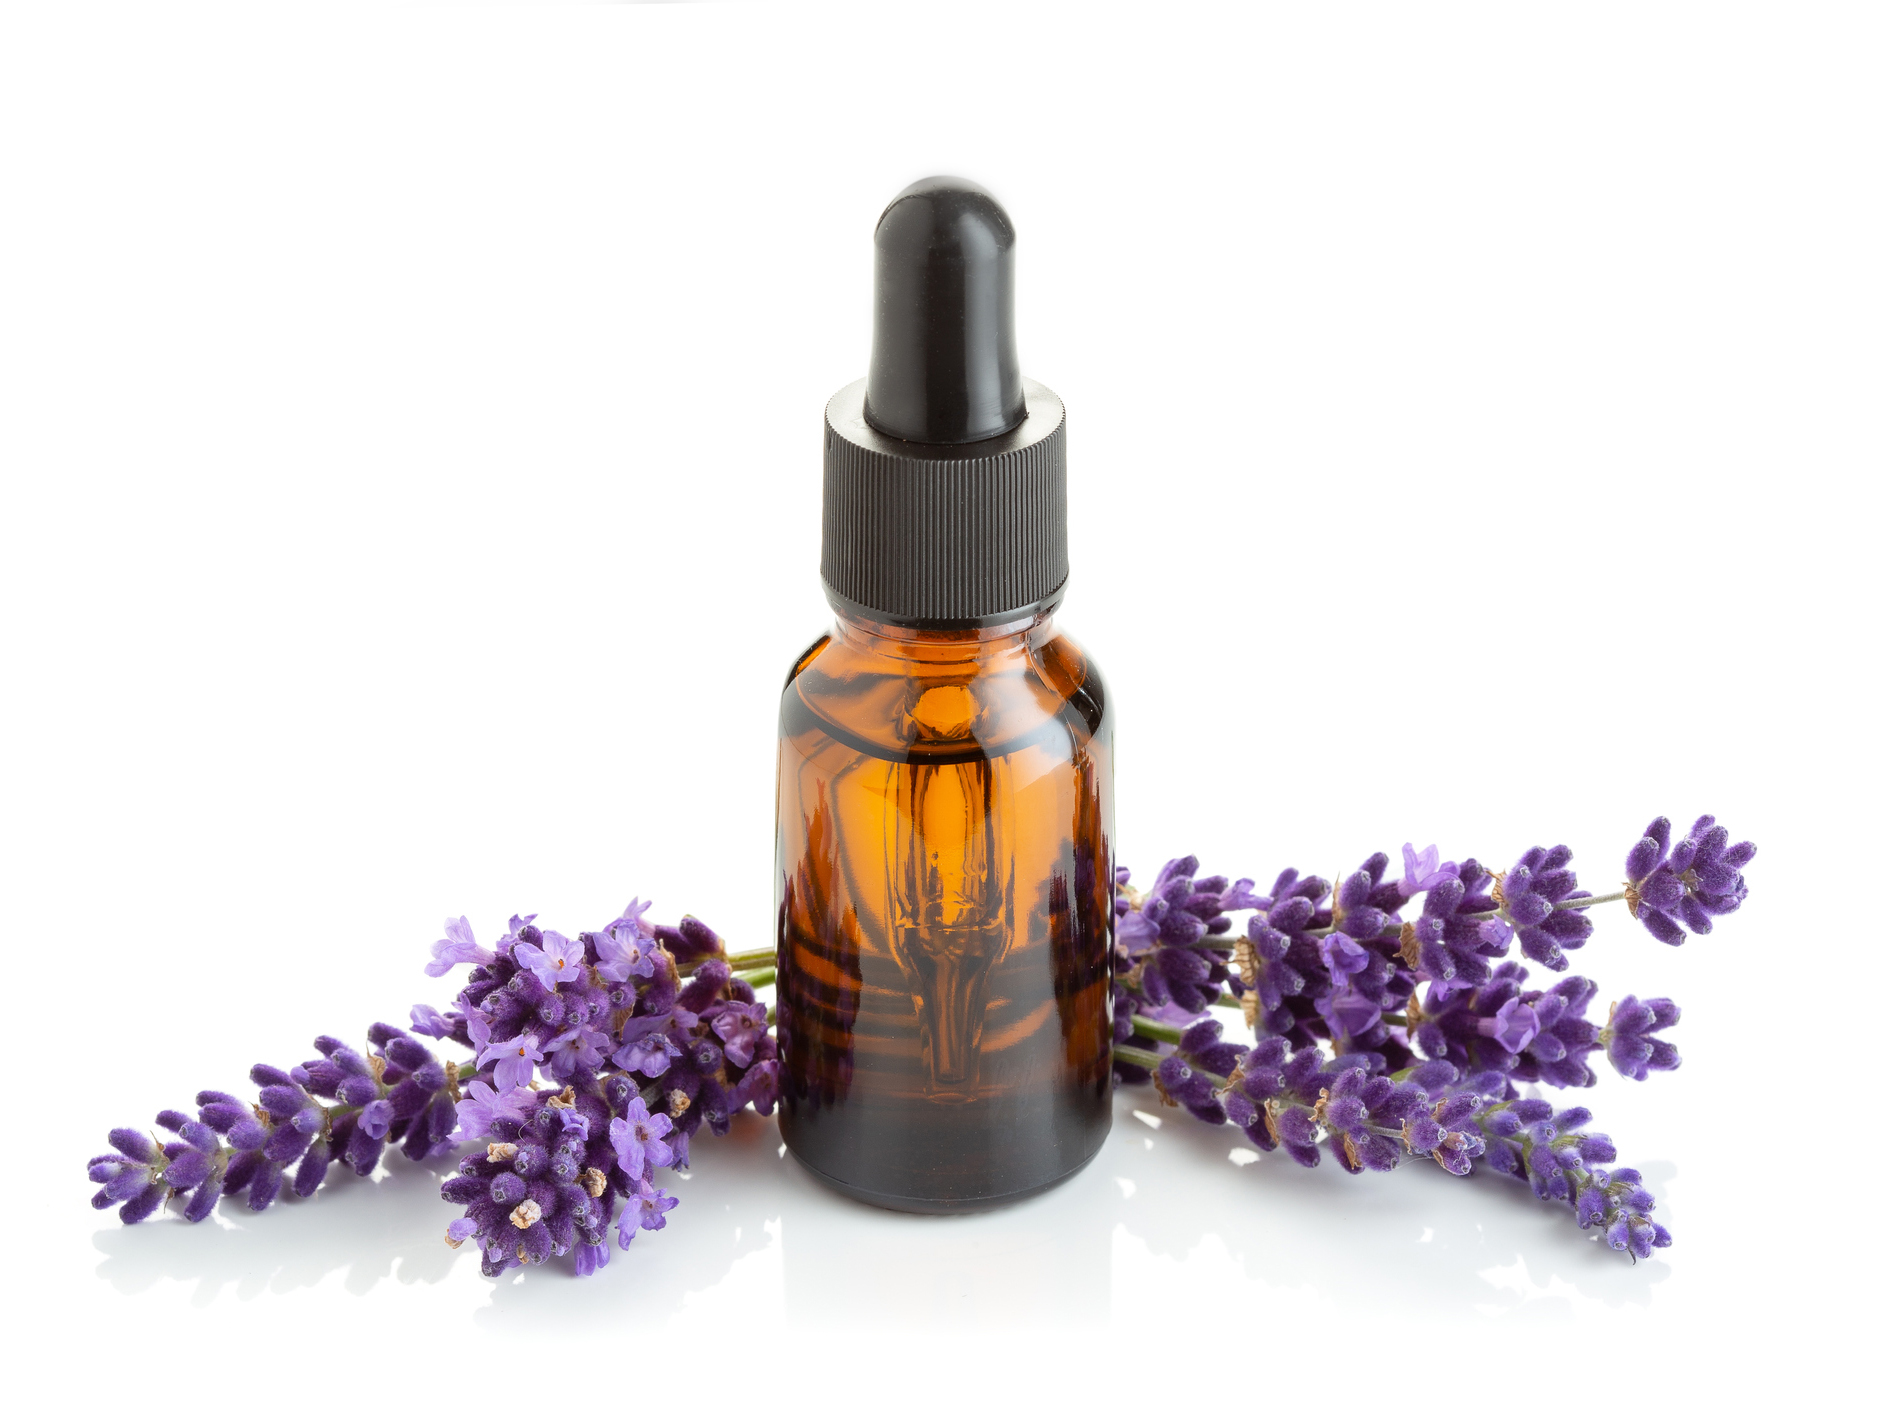 Essential oils for cuts, scrapes and wounds